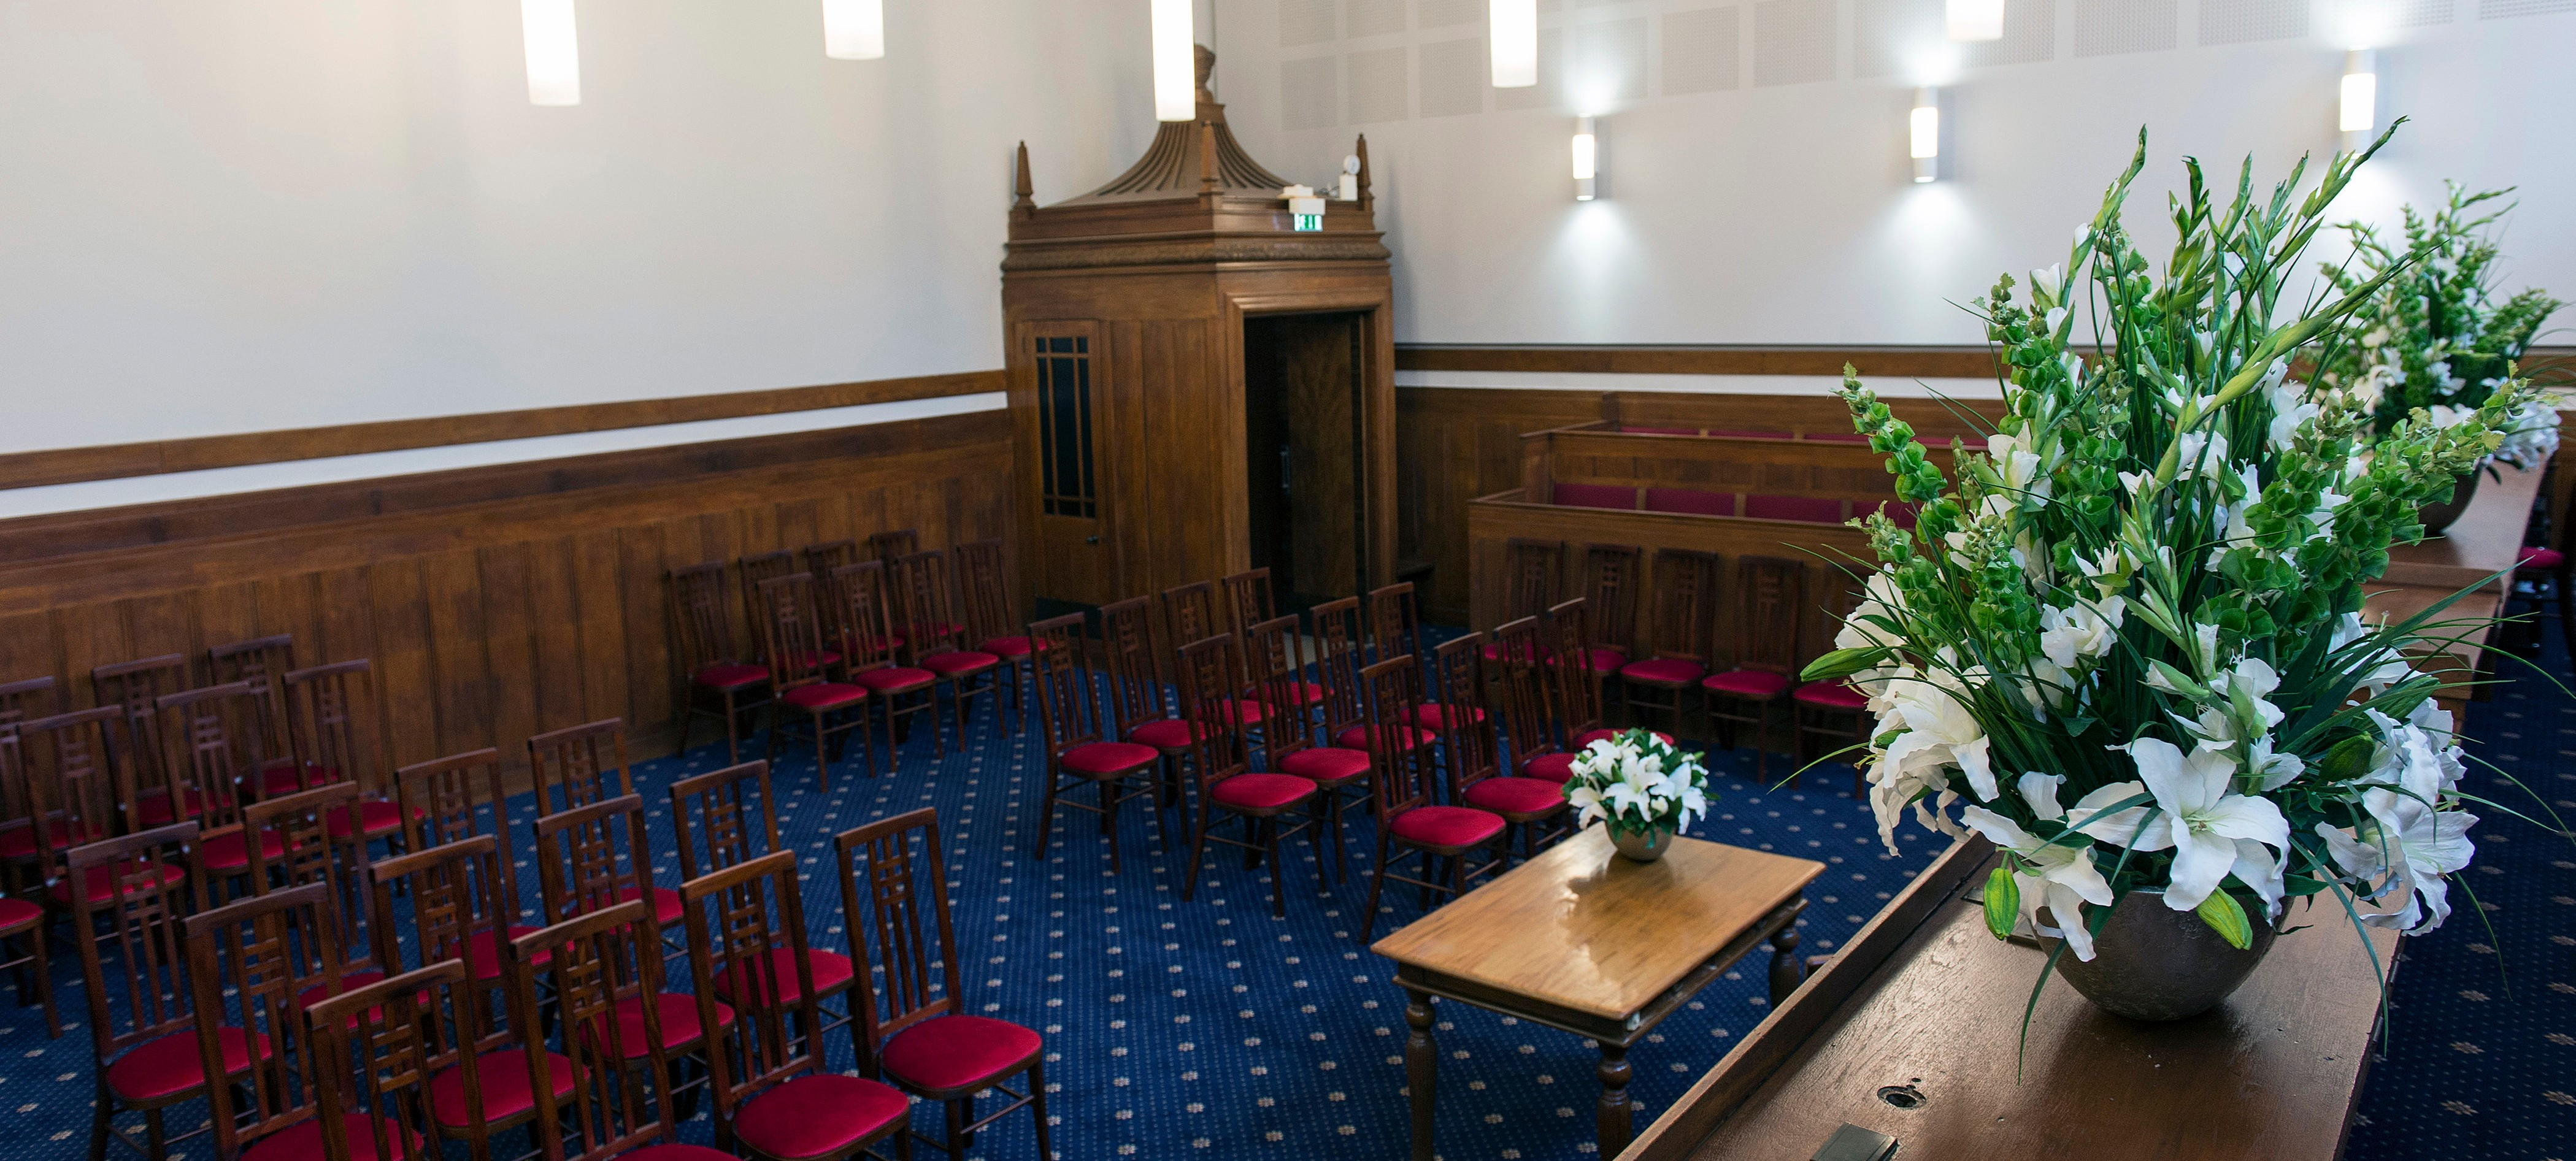 Ceremony Room 1 in Old Court House